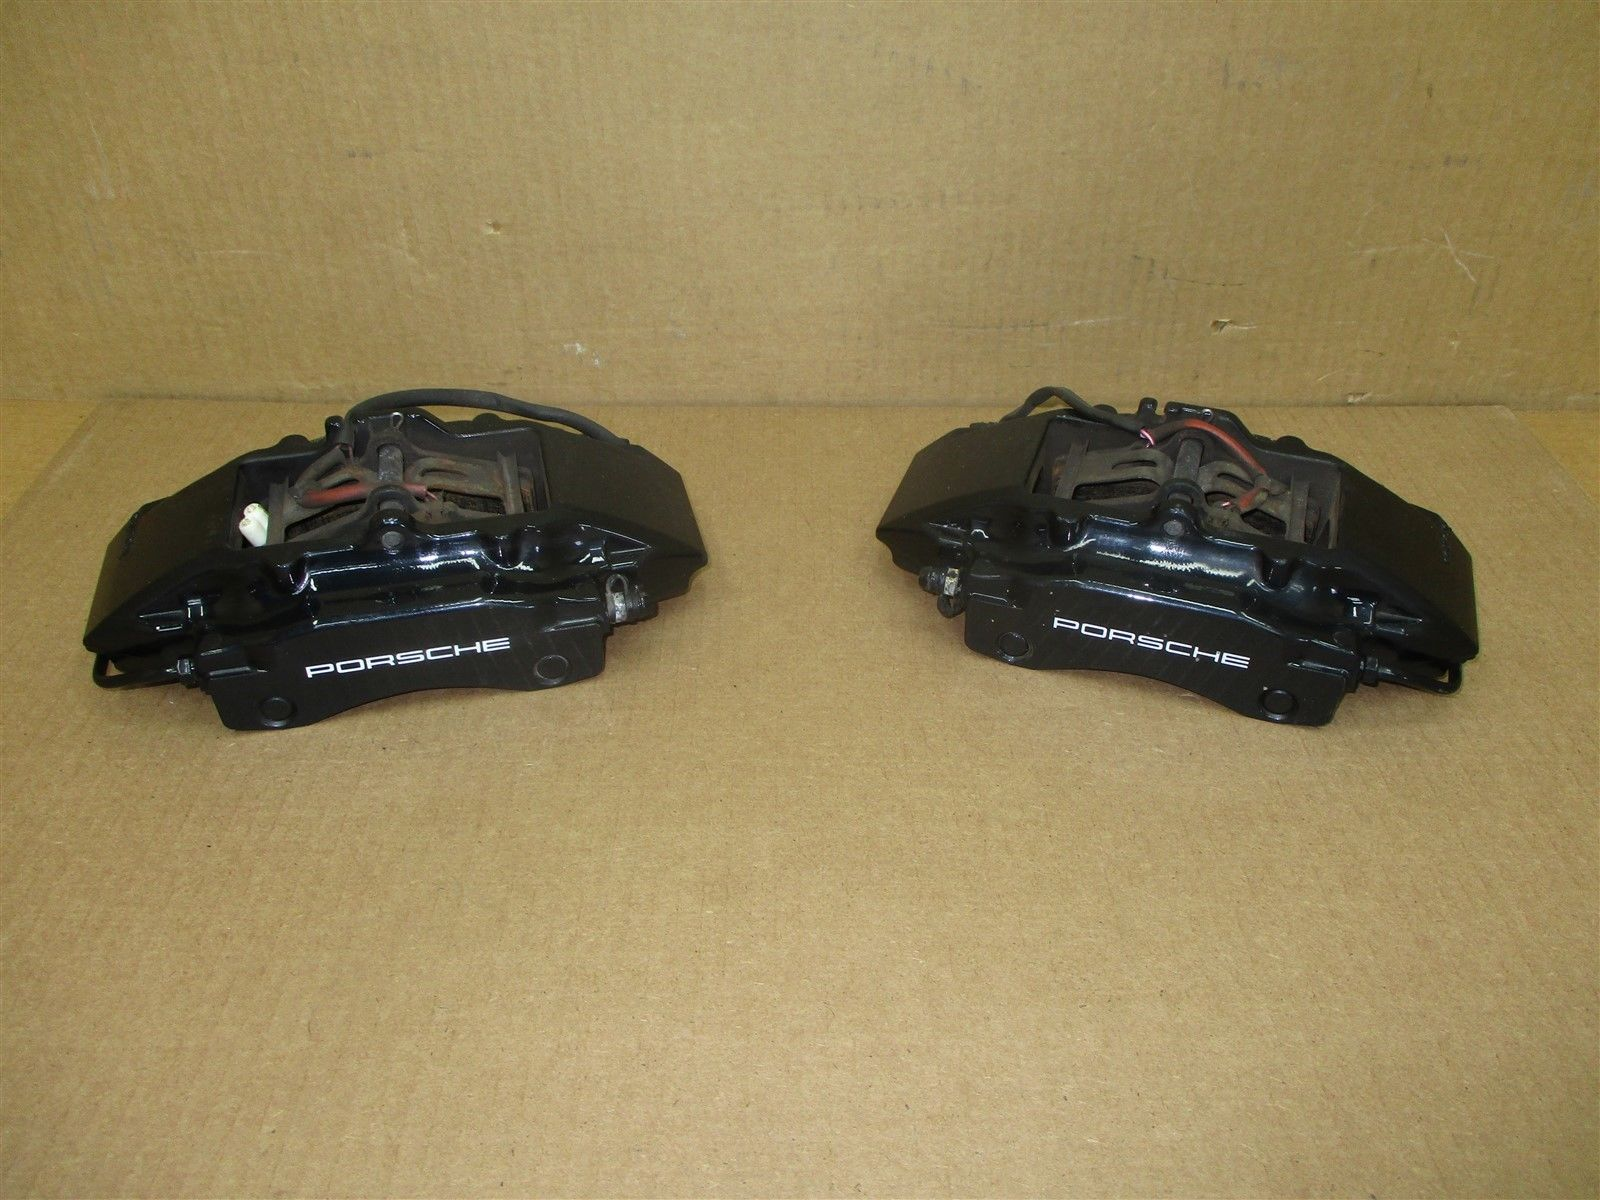 99 Carrera 911 Porsche 996 REAR BREMBO BRAKE CALIPERS 996352421 996352422 50,797